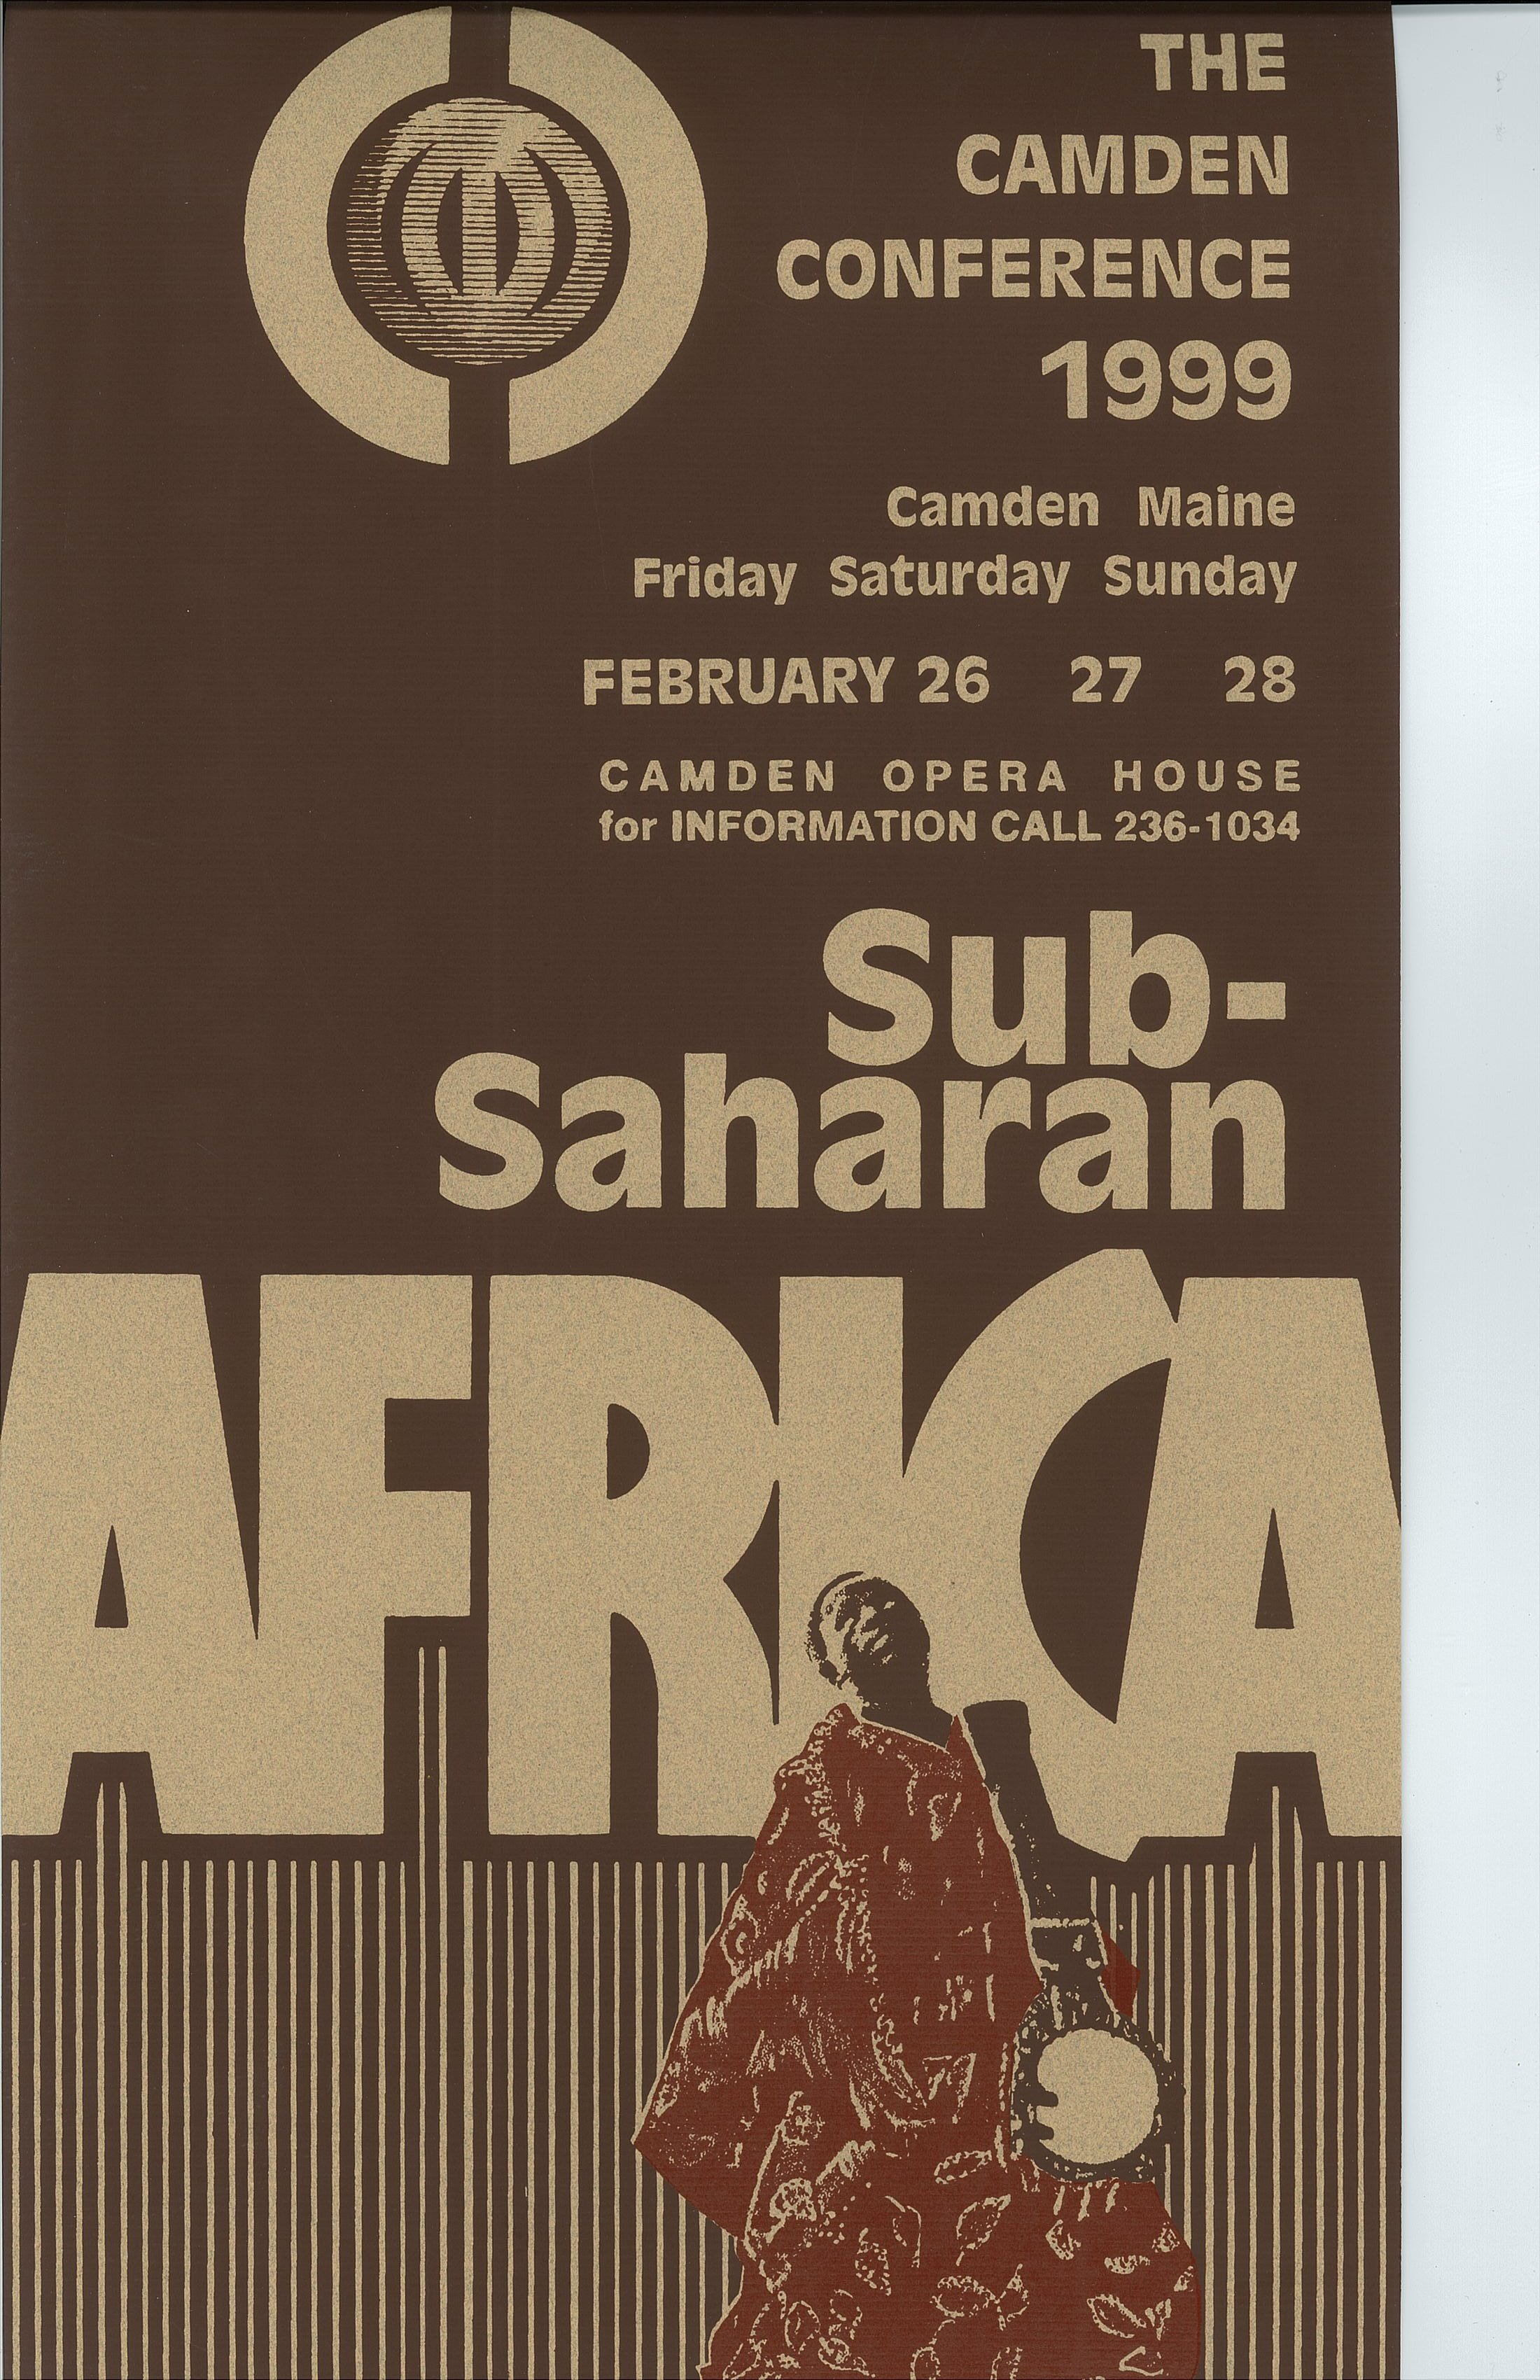 1999 Conference Poster